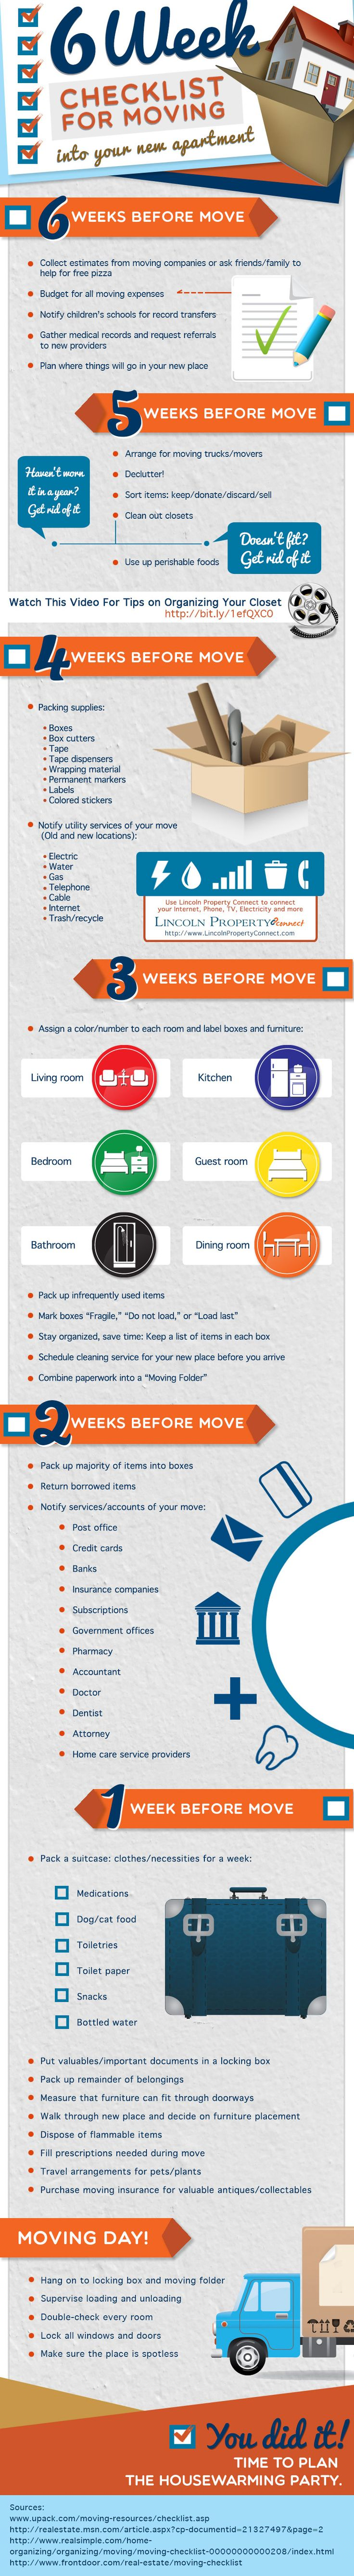 Framed Lightscap3s, LLC6 Week Checklist for Moving into Your New Apartment - #home #Infographics #tips